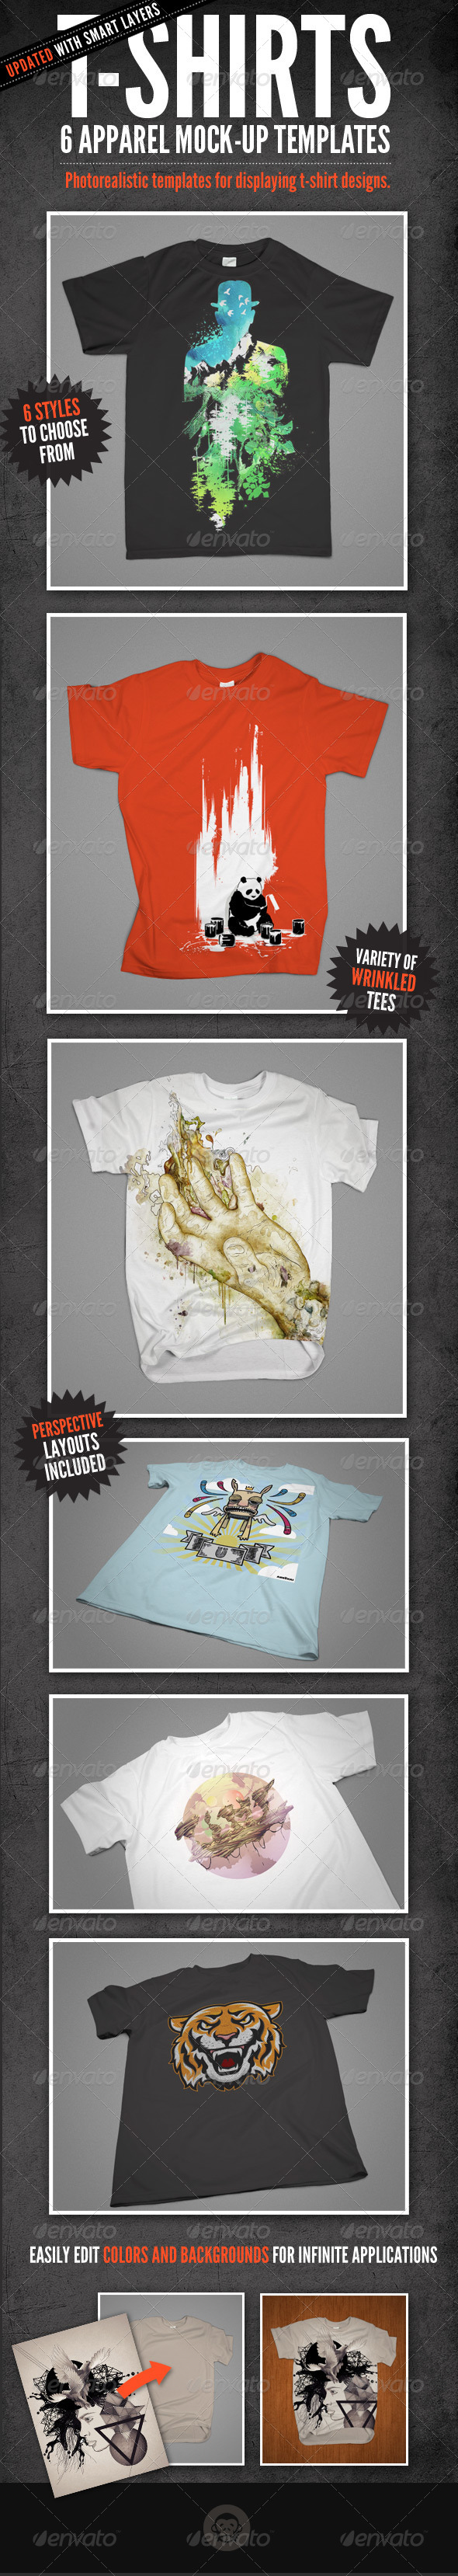 T-Shirt Mock-Ups - Apparel Design - T-shirts Apparel